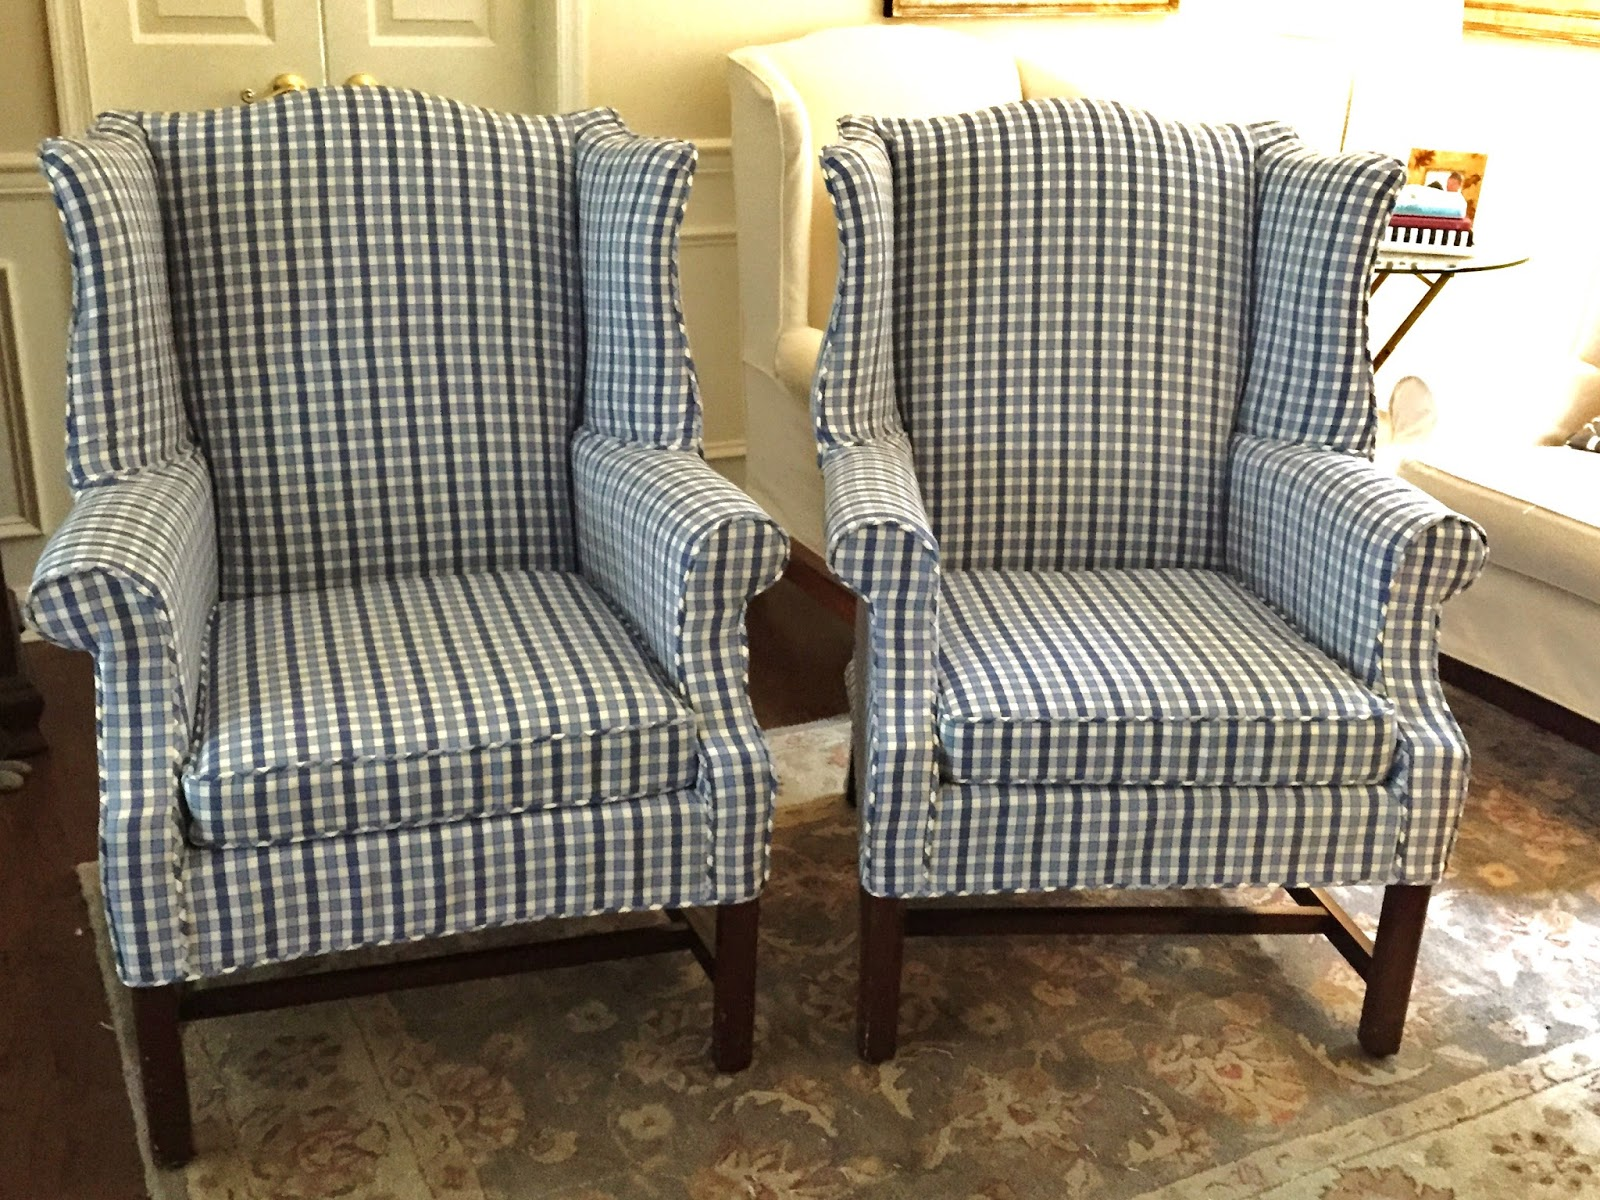 blue wingback chair covers free wood plans pam morris sews checked wing chairs in shades of